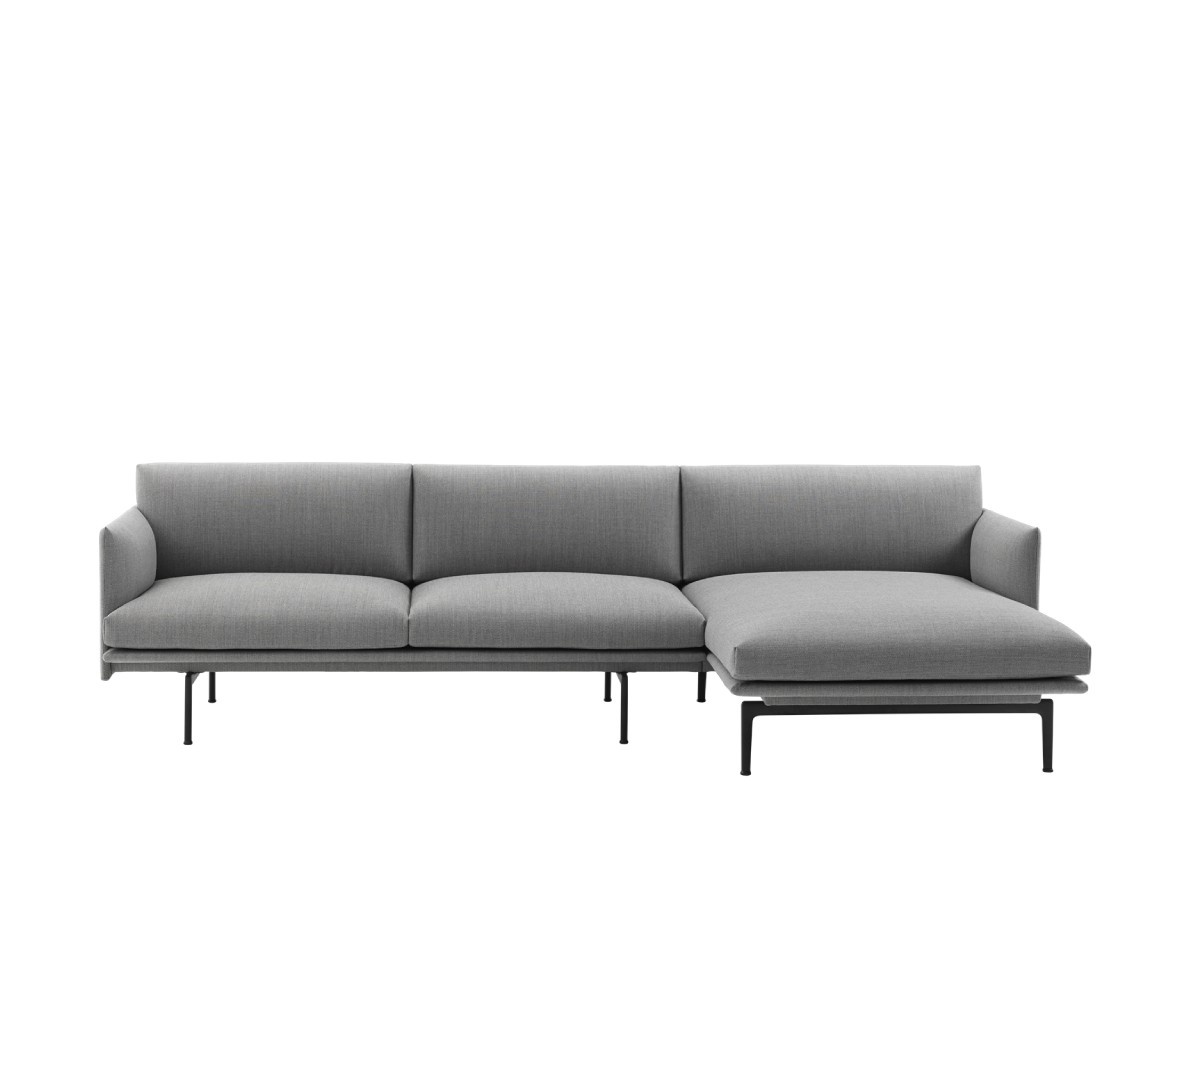 Chaise Longue Design Outlet Outline Sofa By Muuto Luxury Interior Design Online Shop